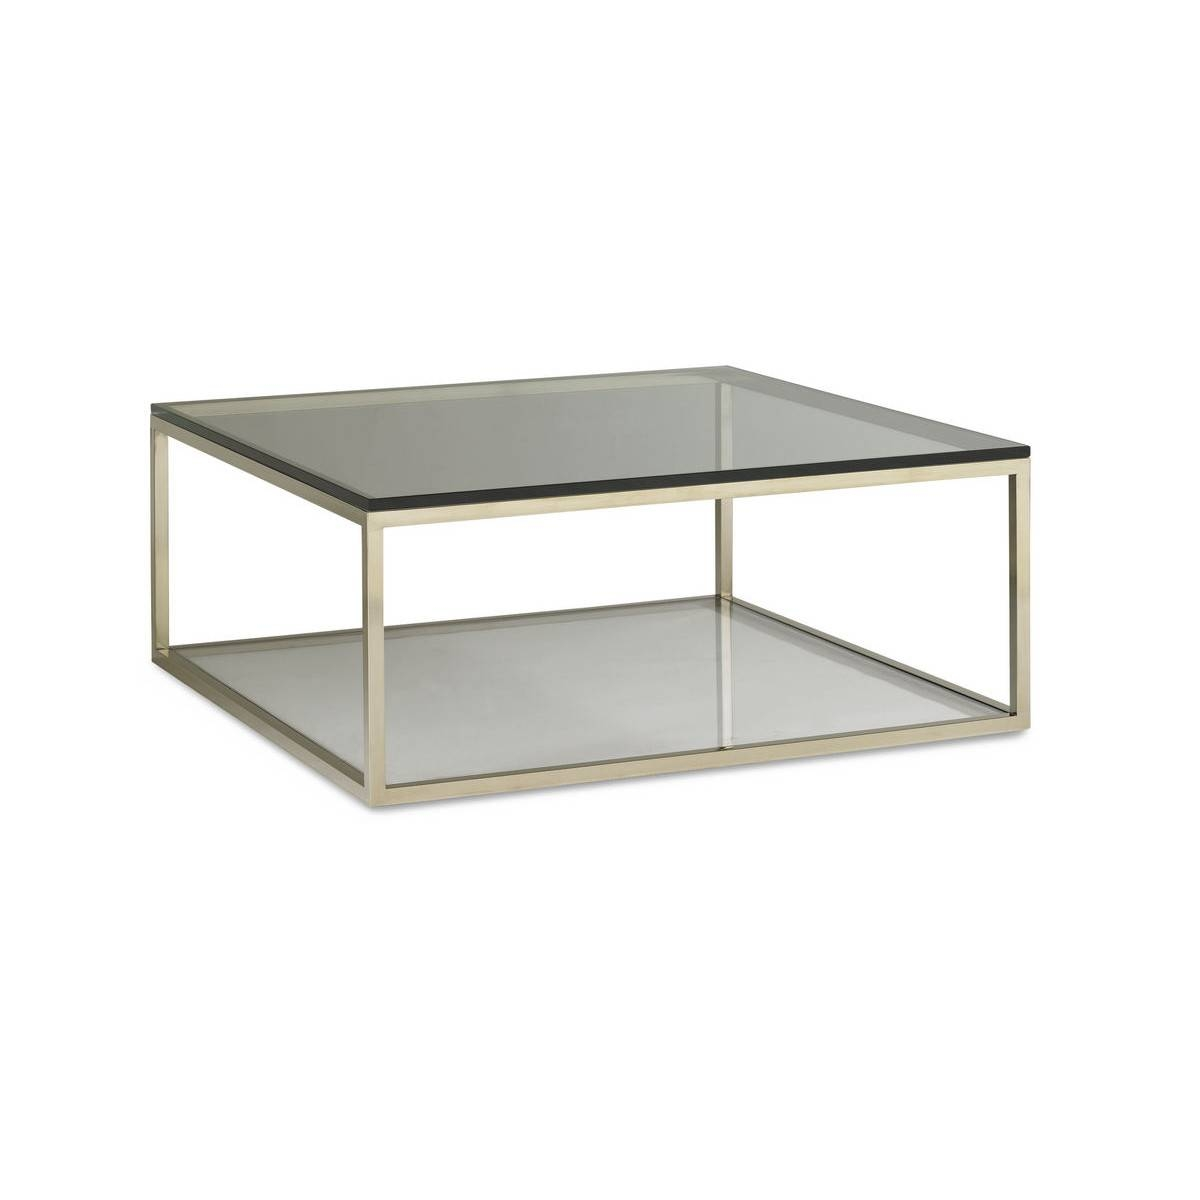 Coffee Table : Square Glass Coffee Tables 1970 Designer Smoked intended for Simple Glass Coffee Tables (Image 5 of 30)